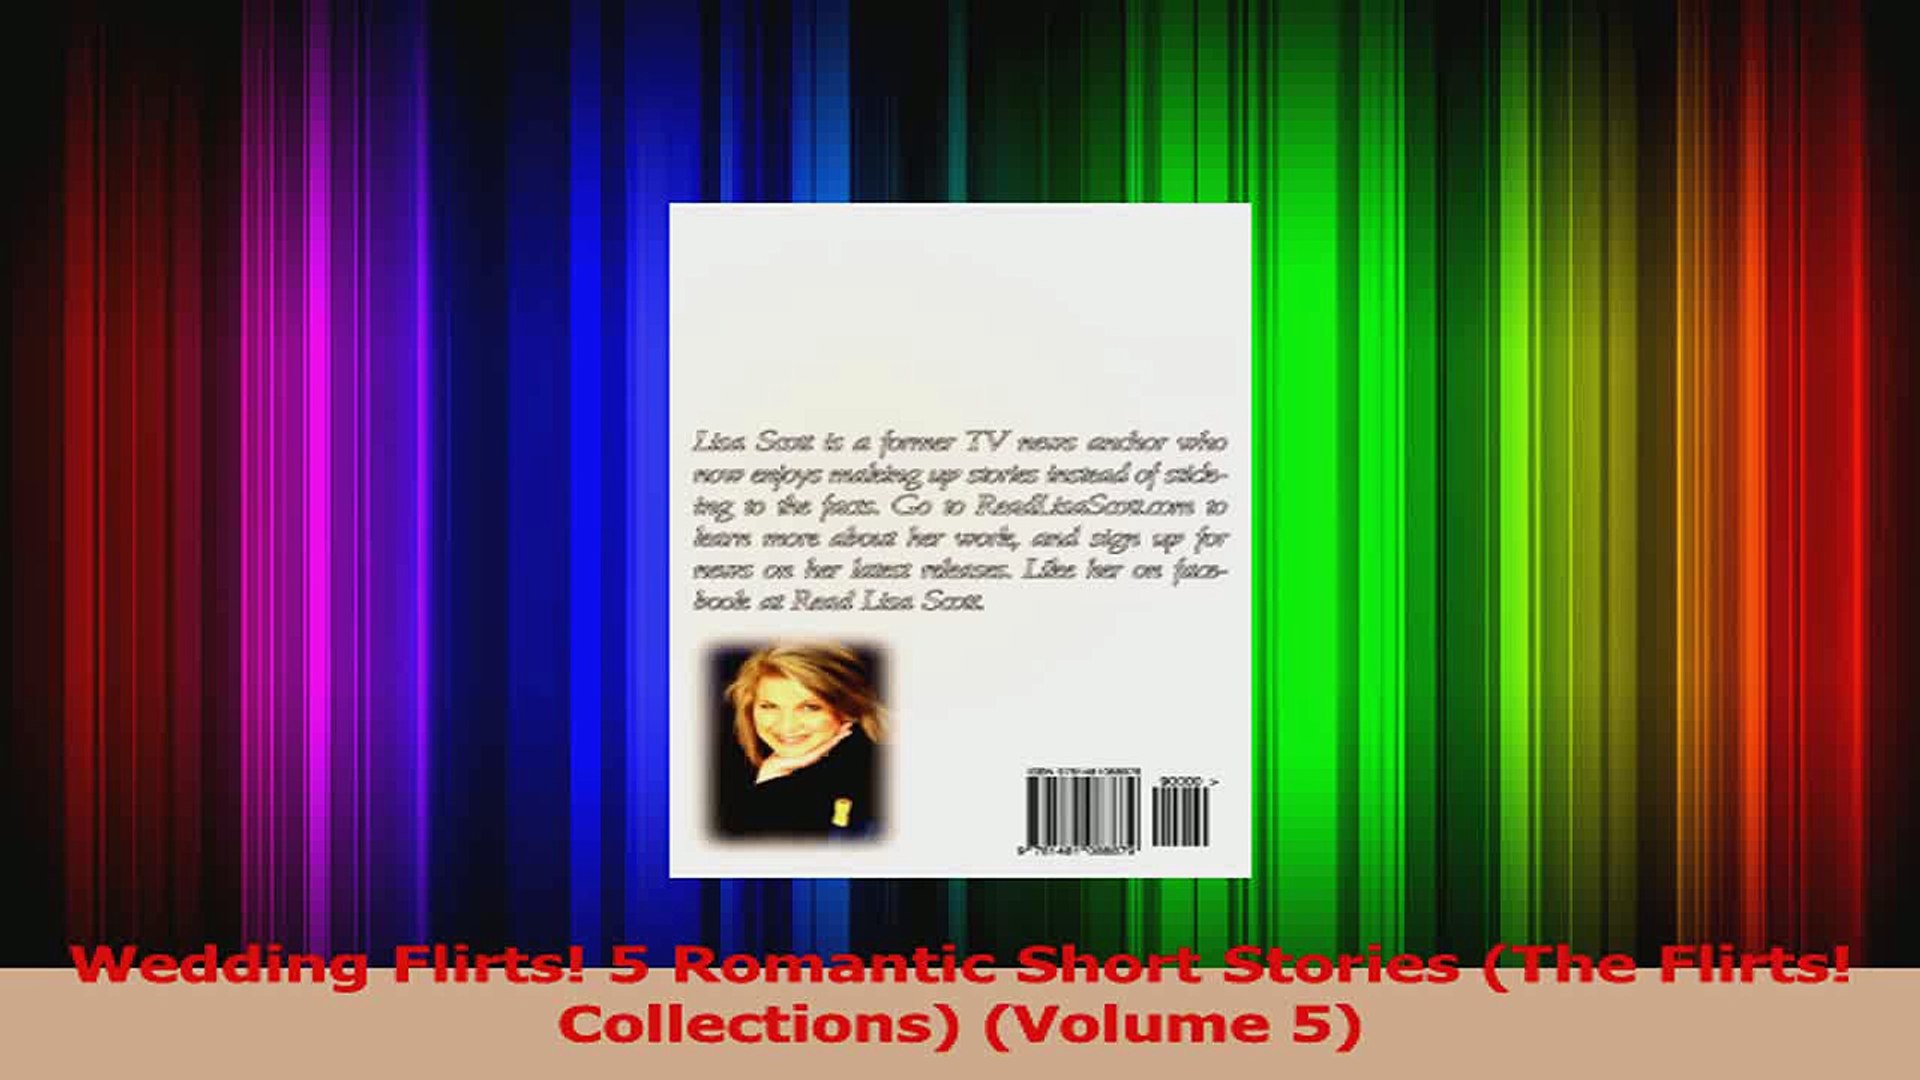 The Flirts! Romantic Short Stories Collections, no. 5